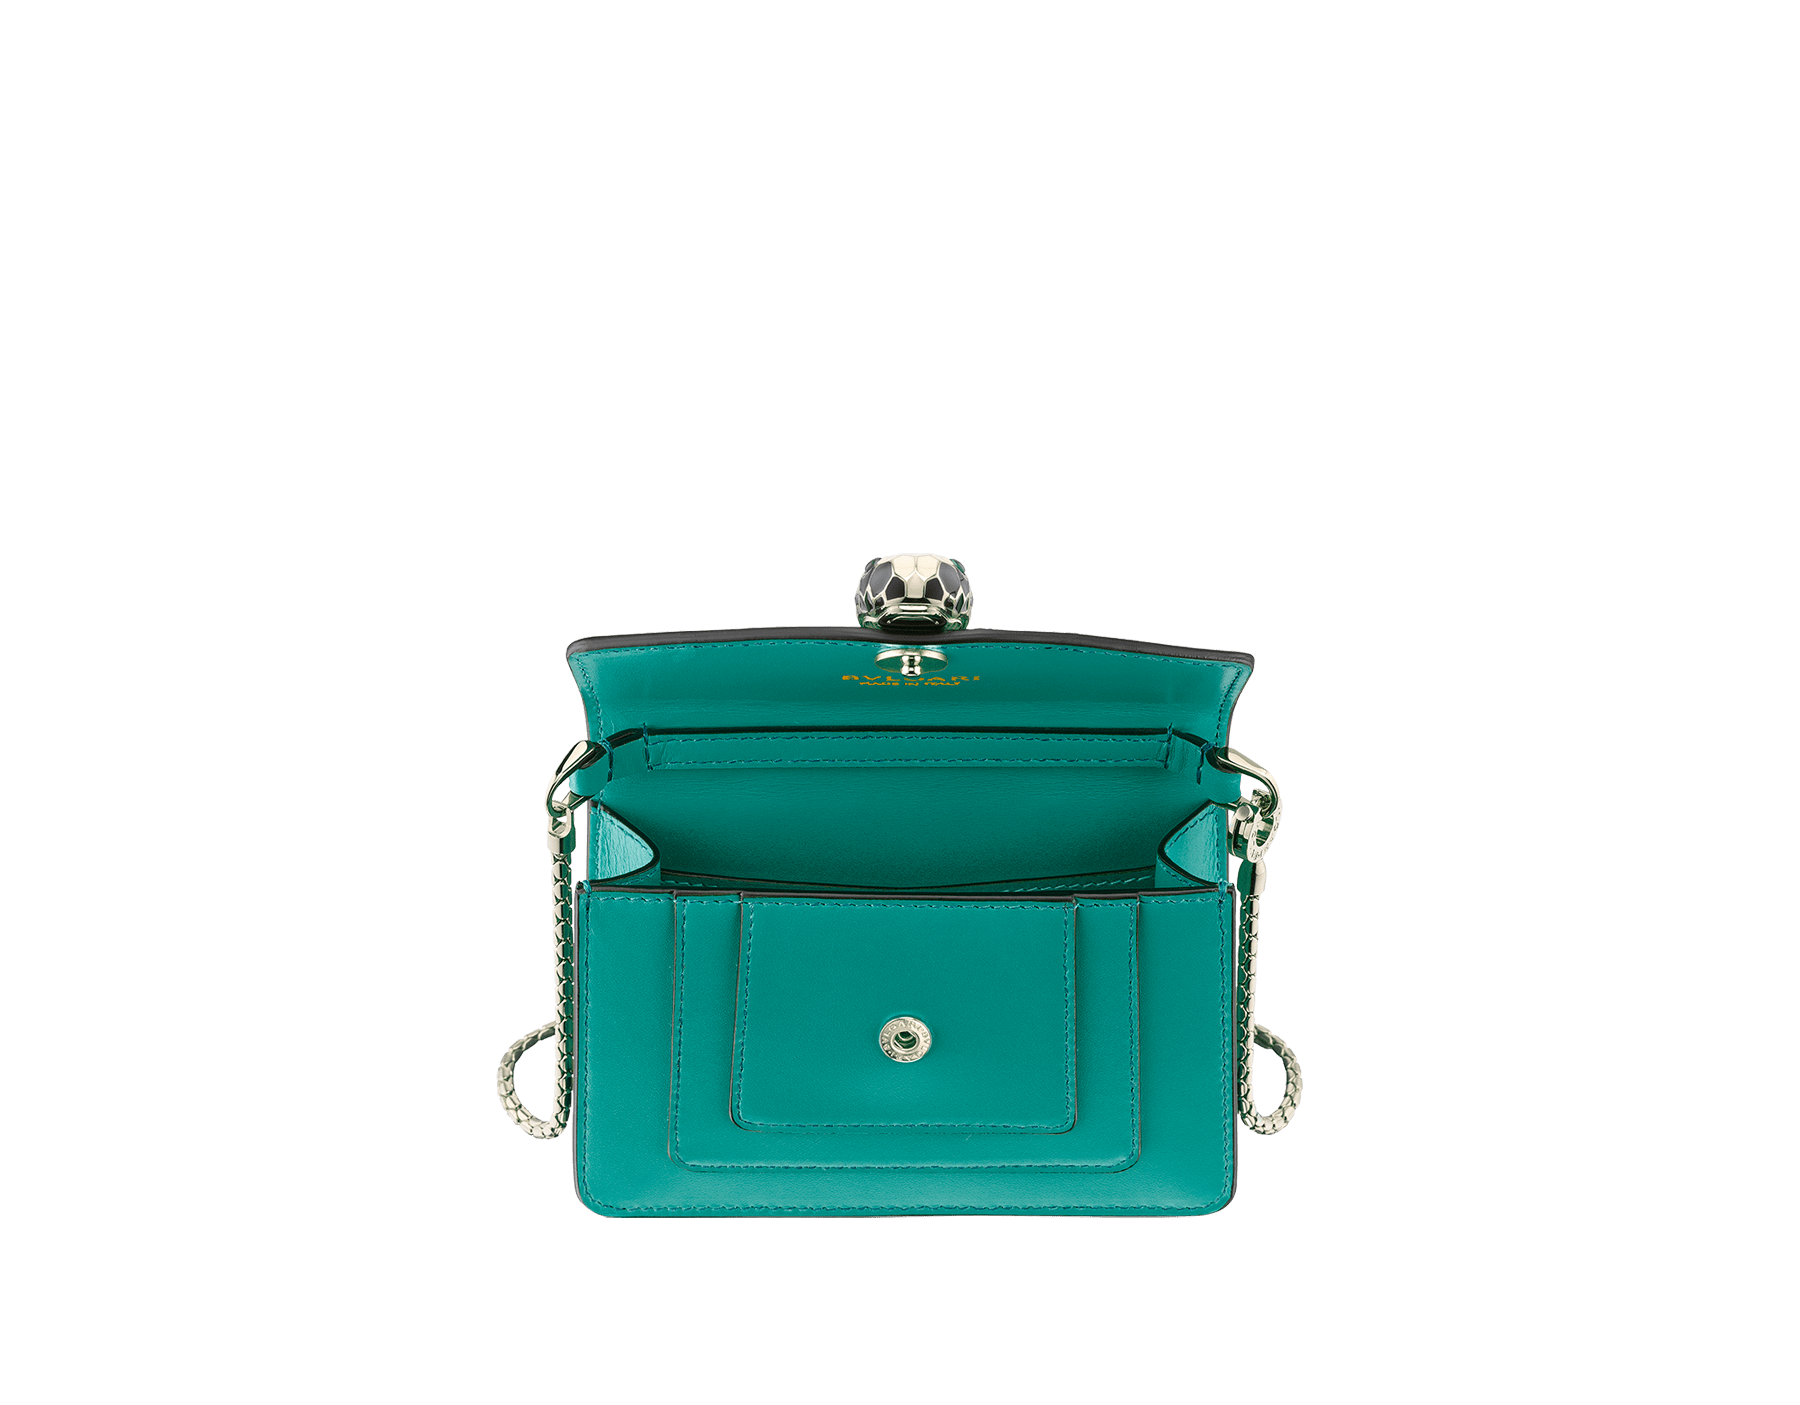 Bag charm Serpenti Forever miniature in tropical tourquoise calf leather, with deep jade calf leather lining. Iconic brass light gold plated snakehead stud closure enameled in black and white and finished with green enamel eyes. 288371 image 2